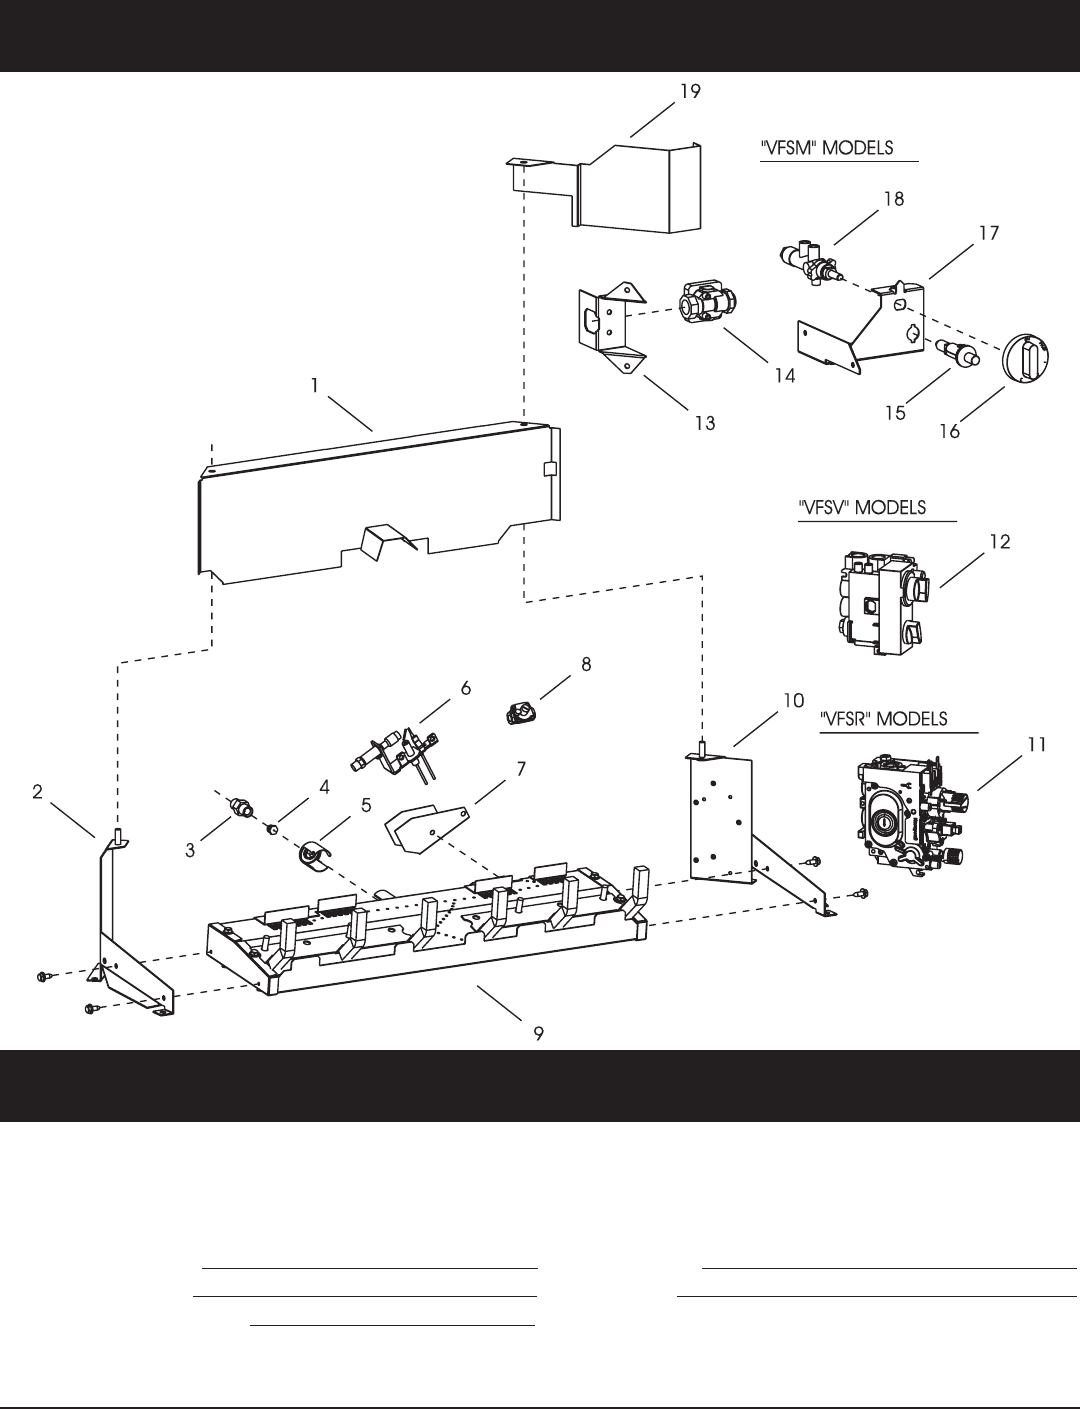 Gas Fireplace Wiring also Basic Ladder Diagram n2DIcvX2hEcSSGGZCtqH85xfXUp2RYOKltDqBtvDdKs together with Wiring Diagram For Underfloor Heating Mats moreover Coleman Furnace Parts Diagrams in addition Honeywell Thermostat Th8320u1008 Wiring Diagram For. on thermostat for electric fireplace